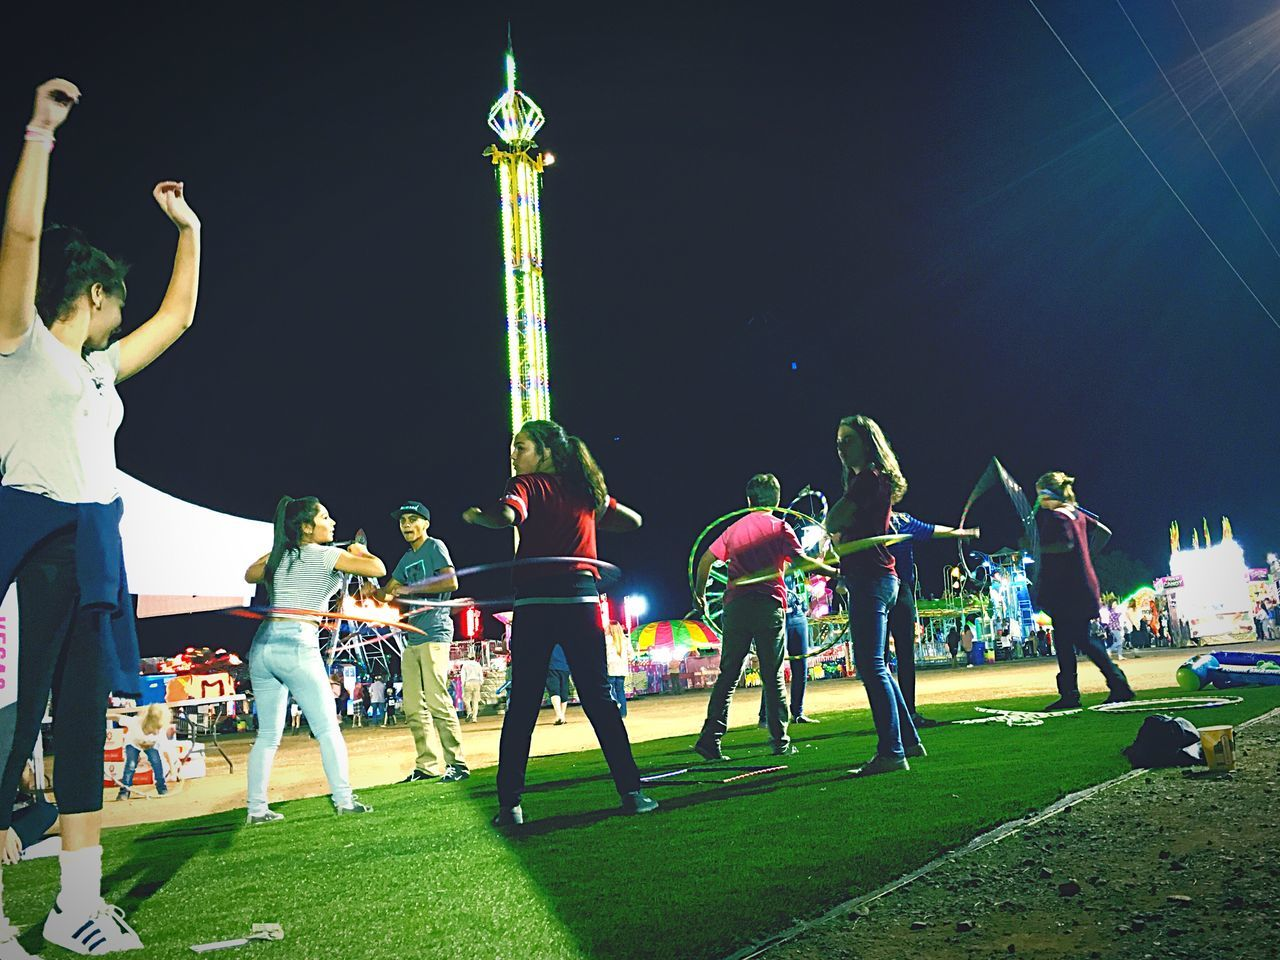 My Year My View Men Real People Grass Large Group Of People Outdoors Night Sky People Hullahoop Kids Being Kids Carnival Check This Out EyeEm Best Shots